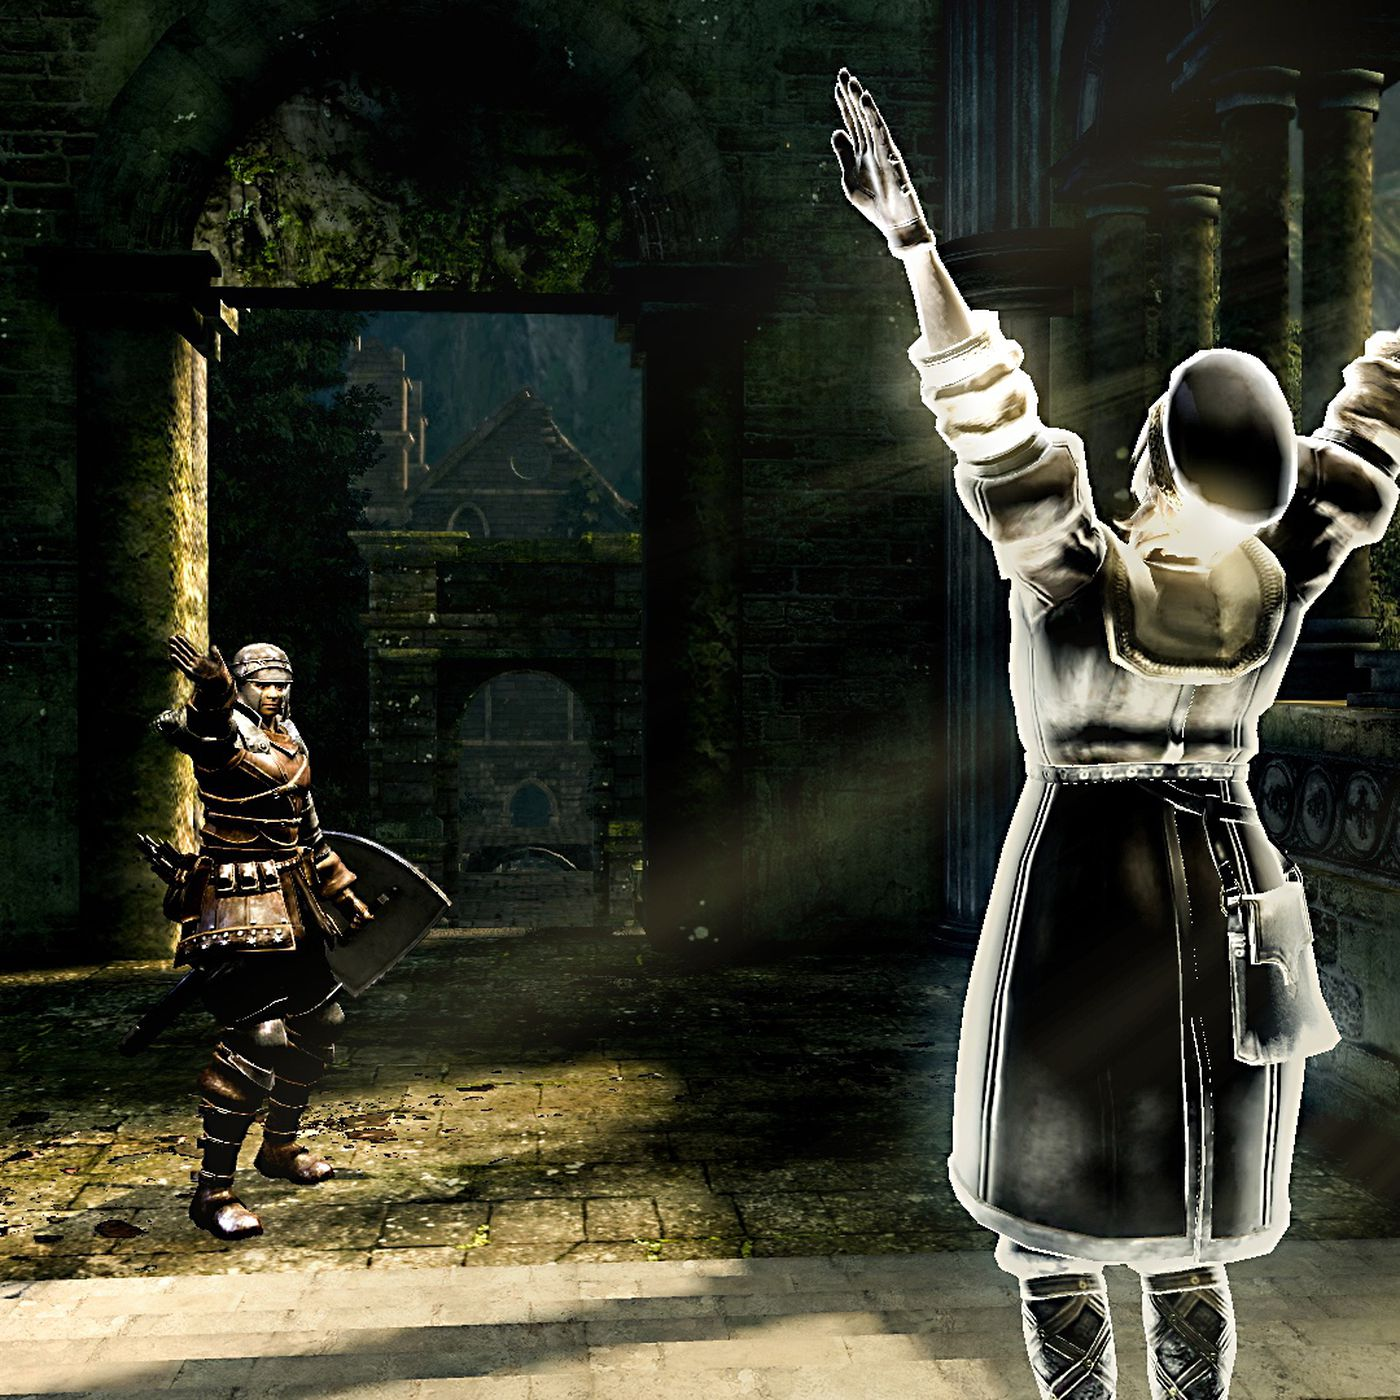 Dark souls remastered clipart graphic transparent library Dark Souls: Remastered network test kicks off May 11 - Polygon graphic transparent library